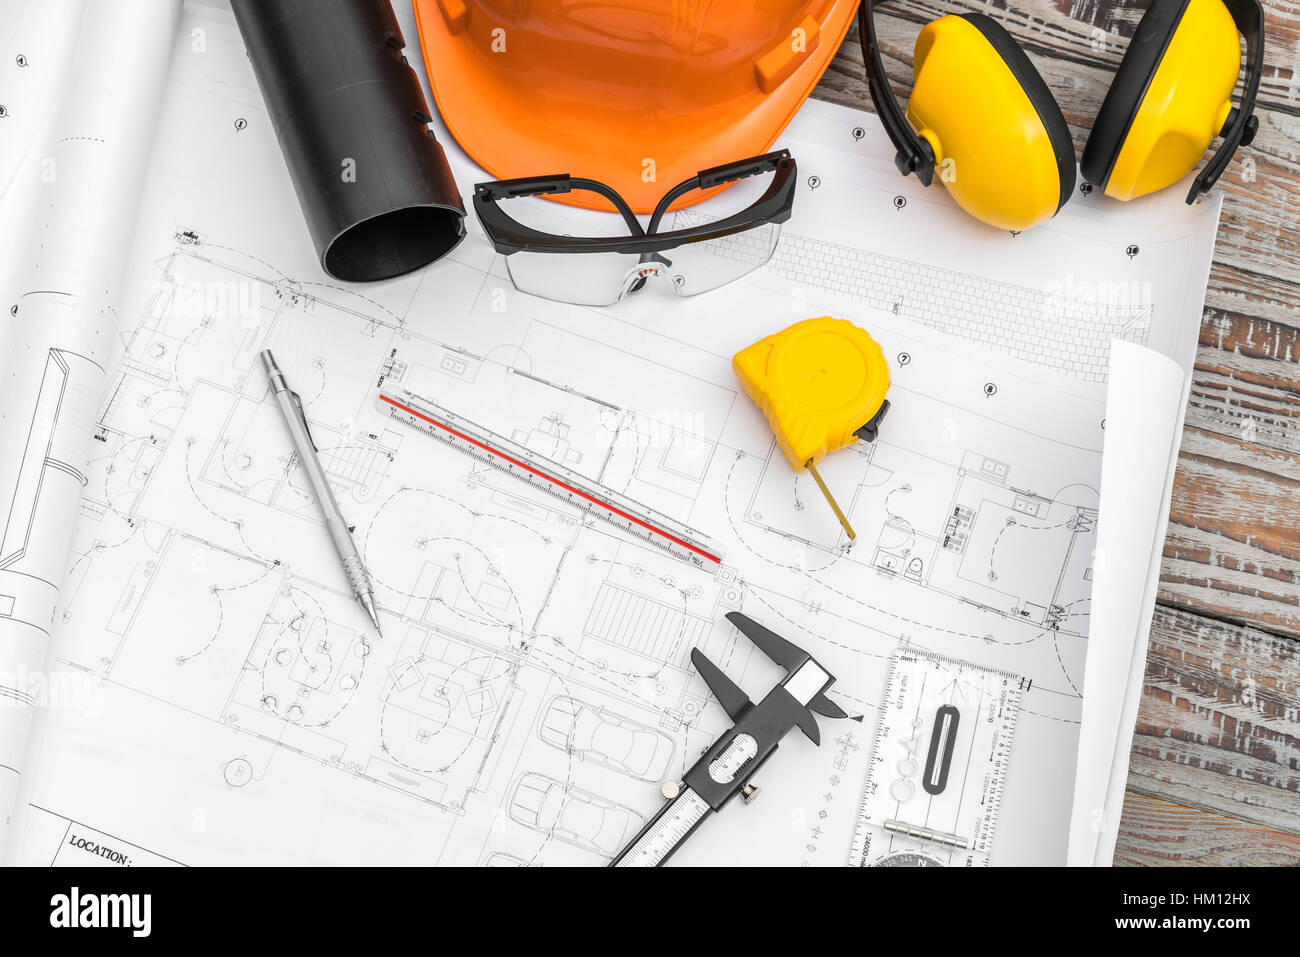 drawing tools. Construction Plans With Helmet And Drawing Tools On Blueprints